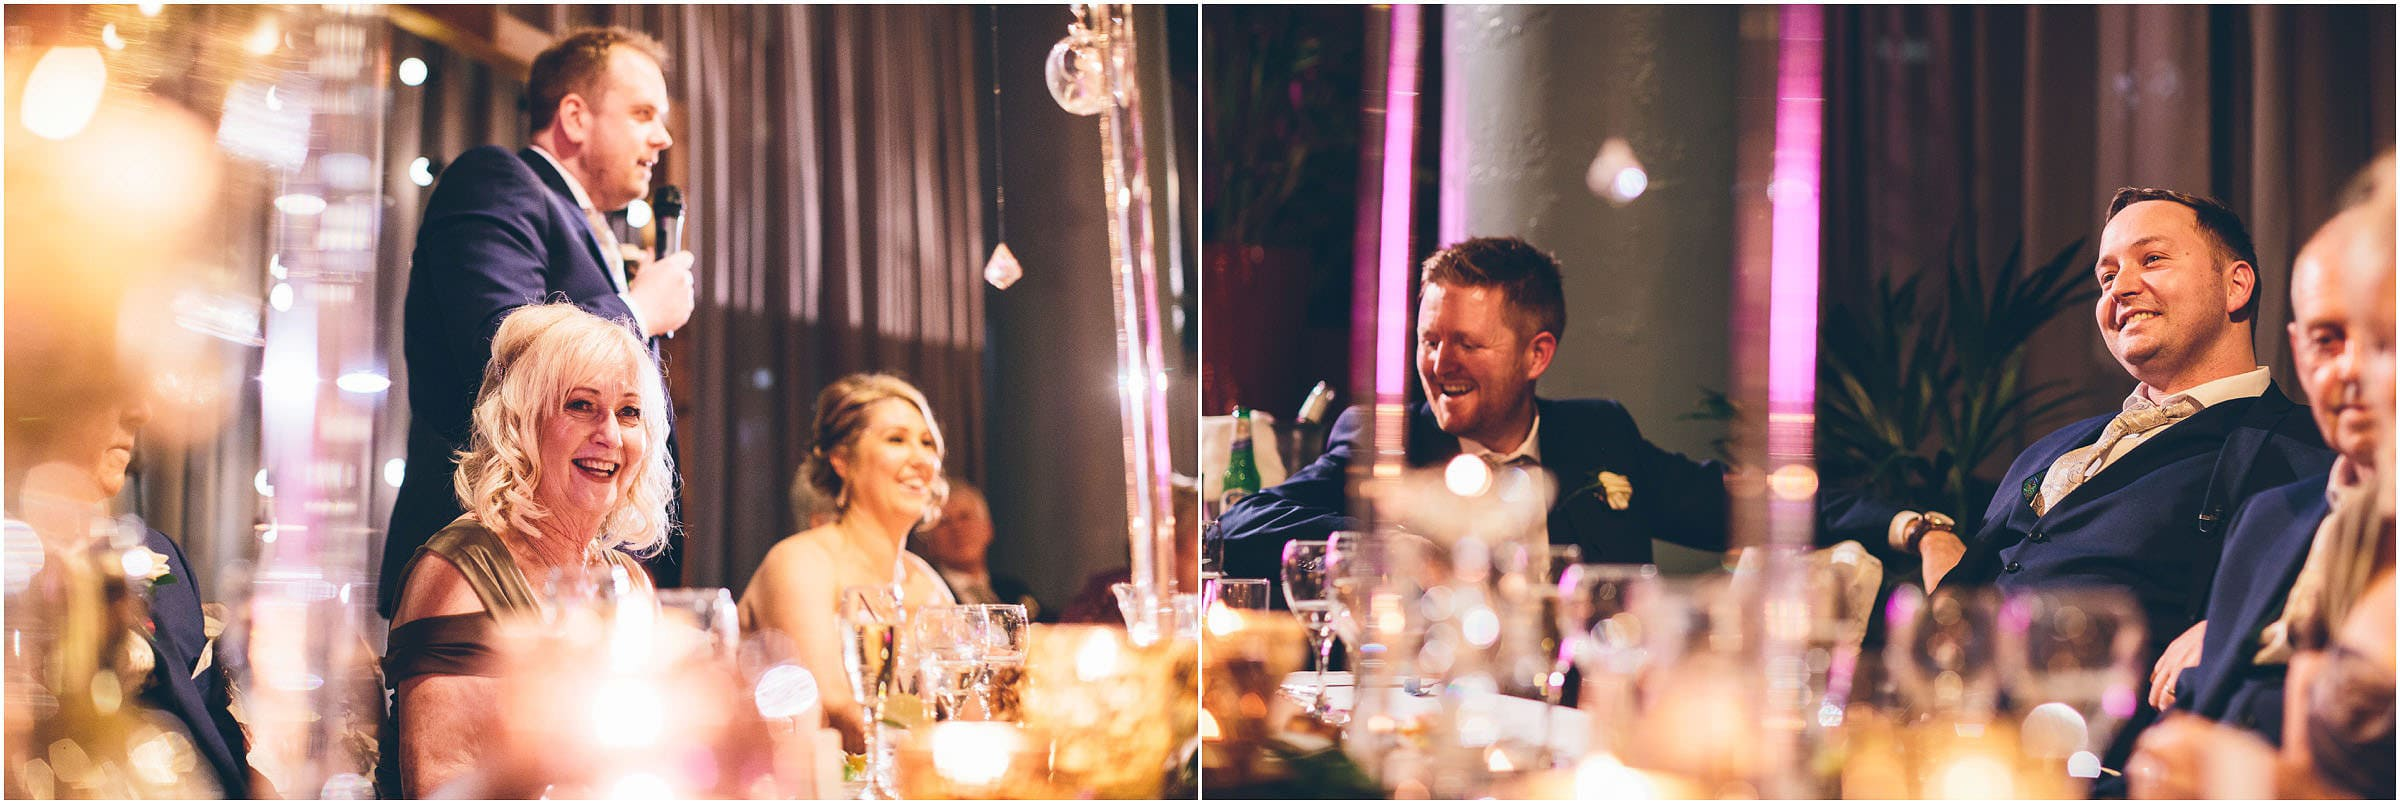 The_Place_Hotel_Wedding_Photography_0077